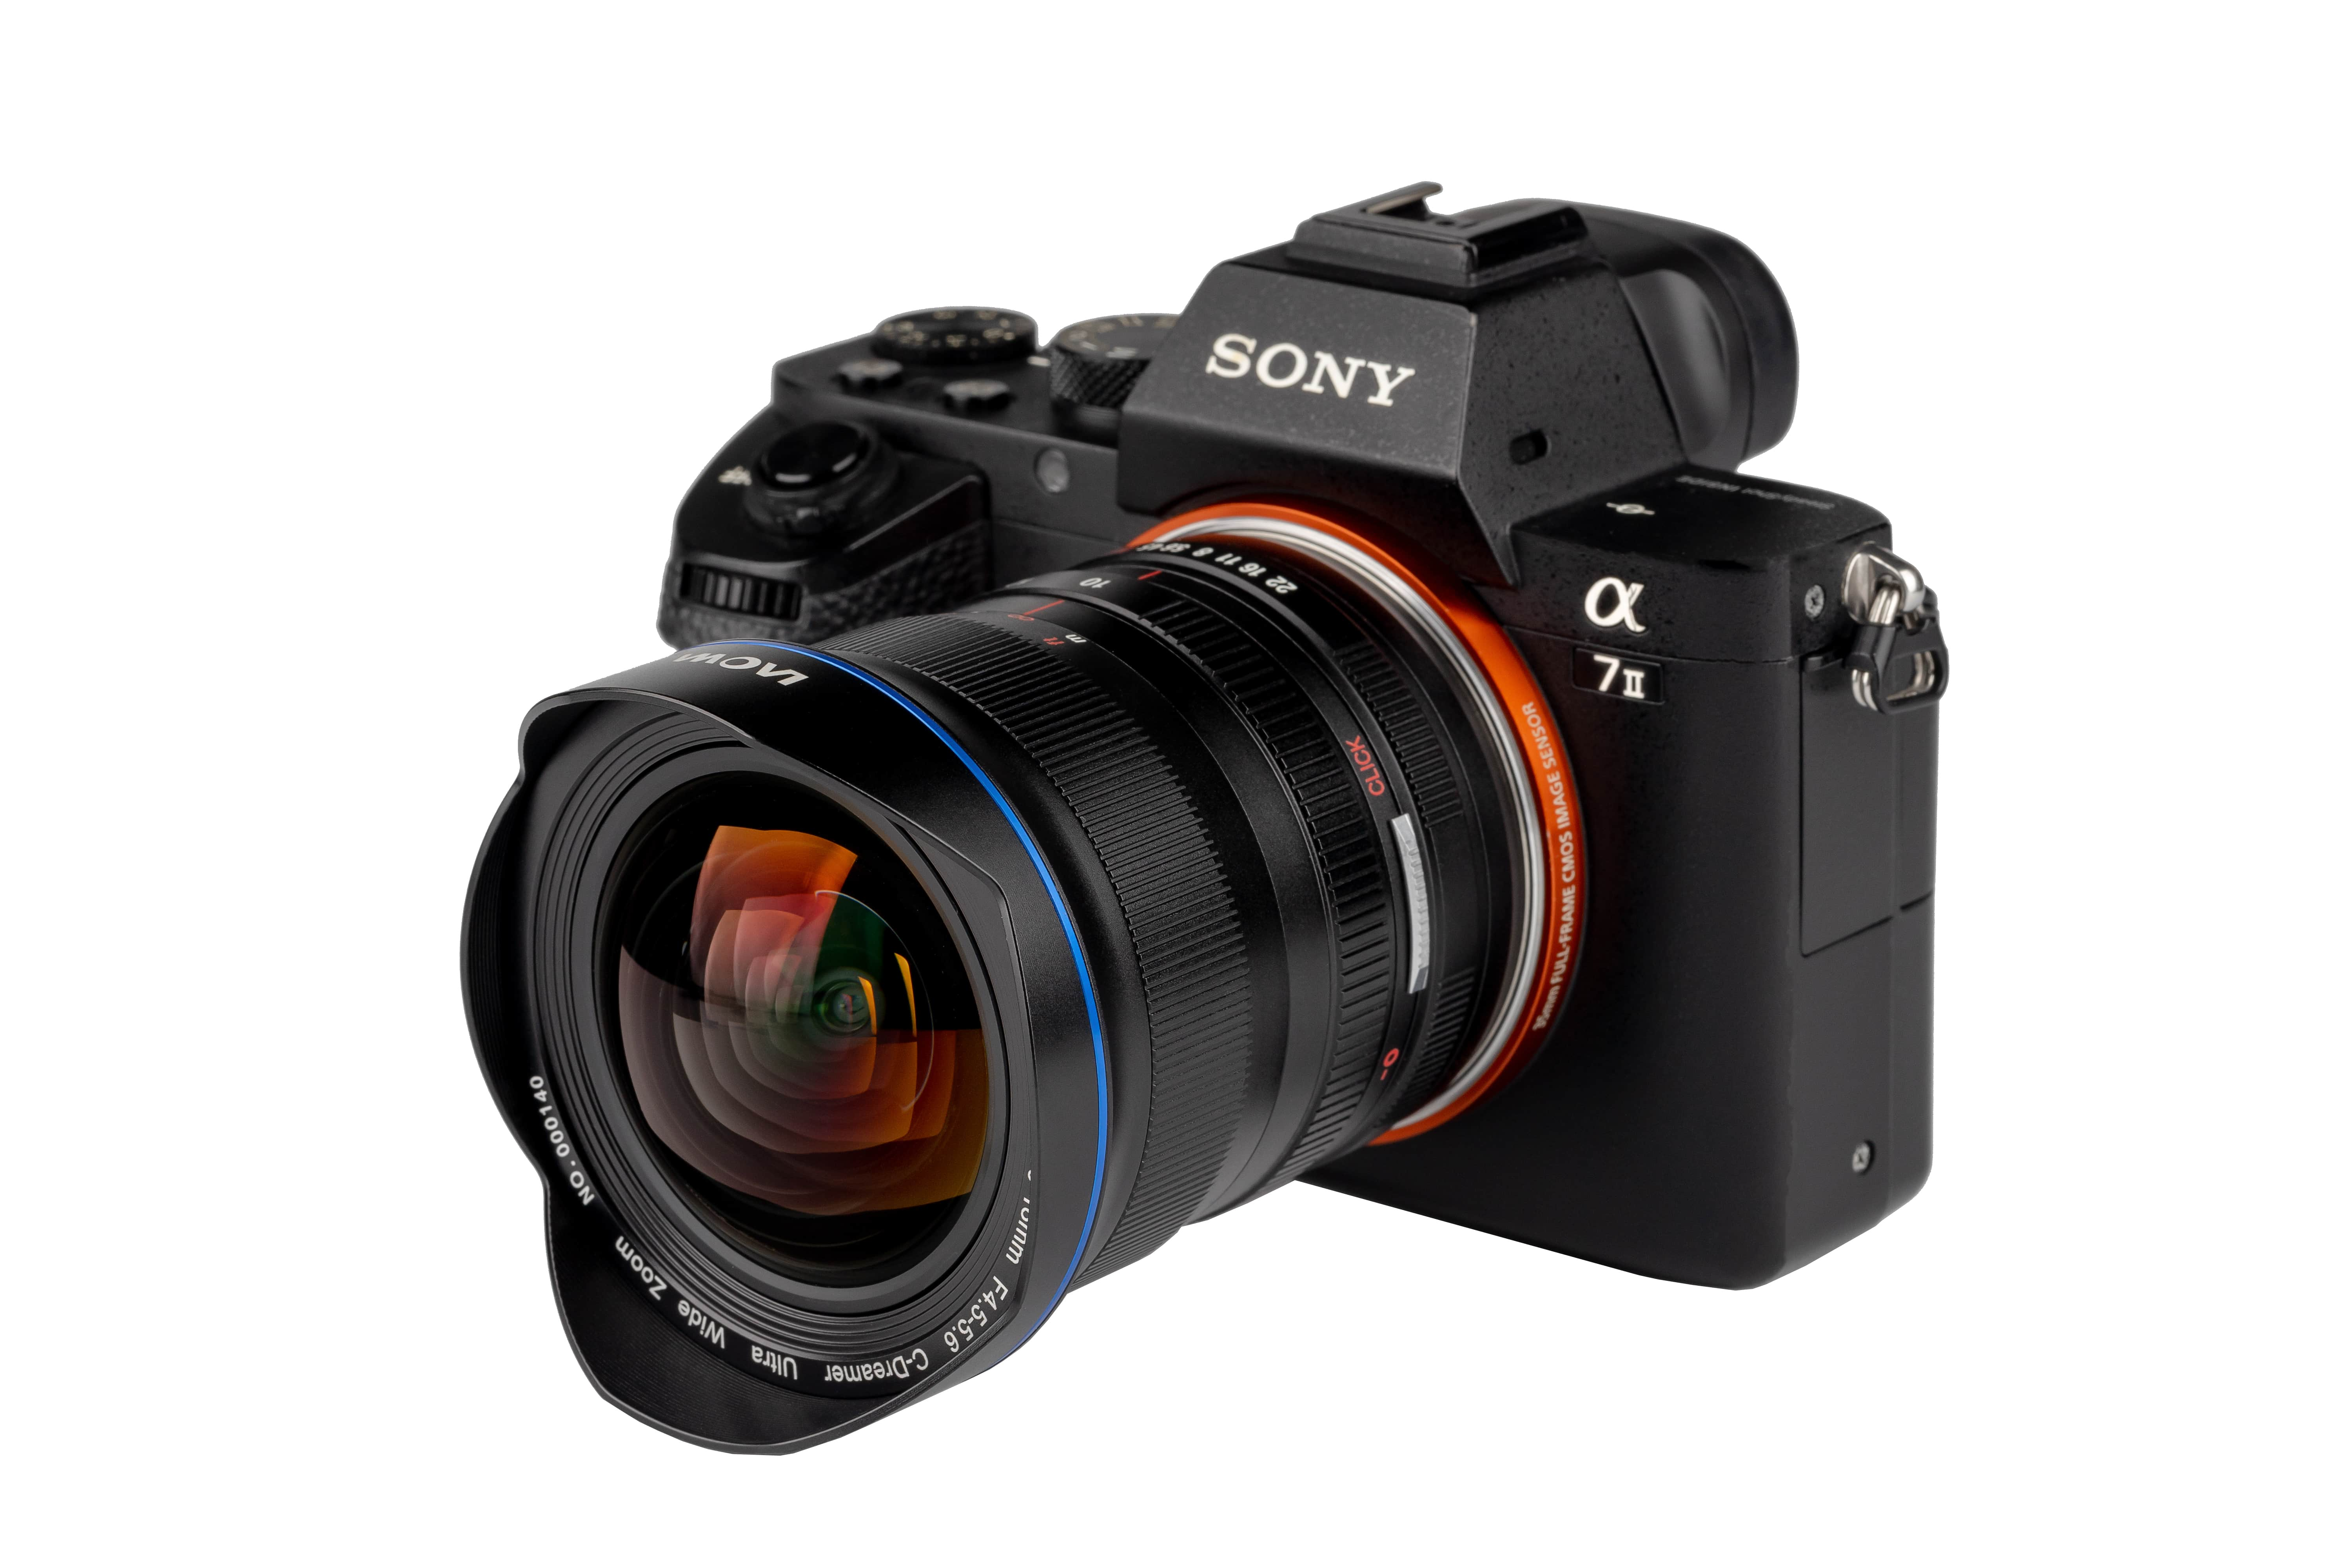 Laowa 10-18mm: widest ever zoom for Sony full-frame